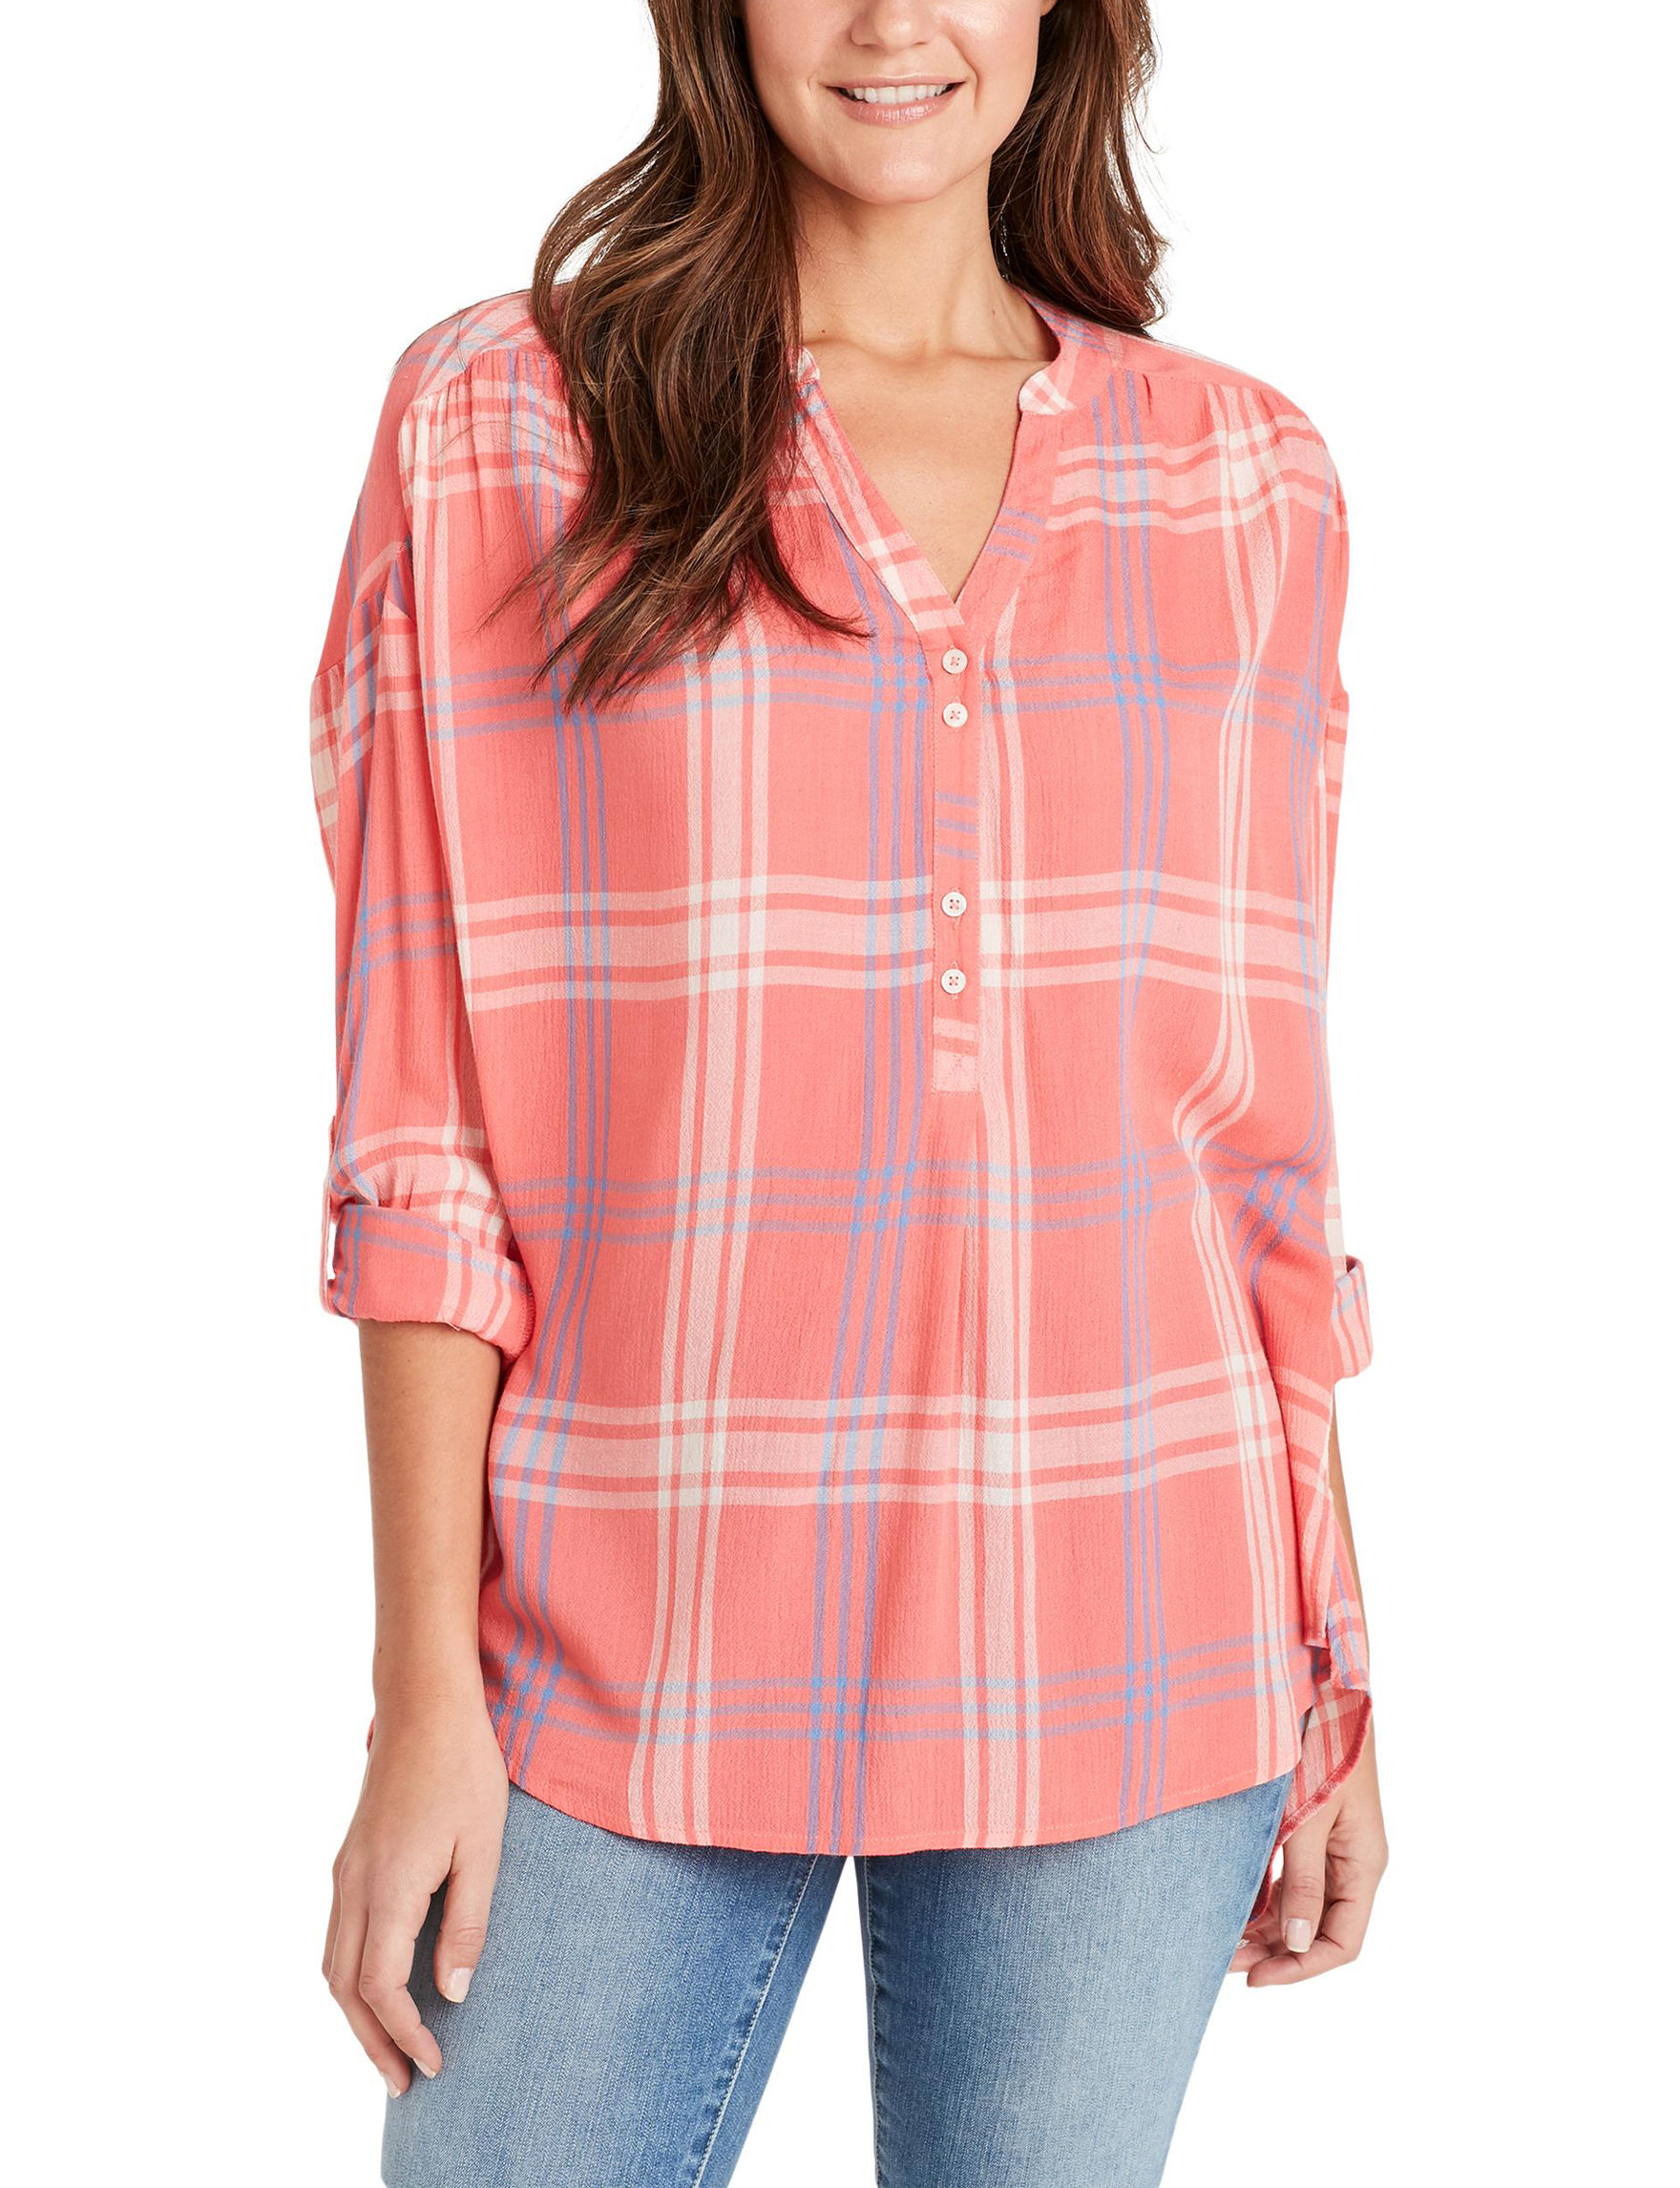 Nine West Coral Shirts & Blouses